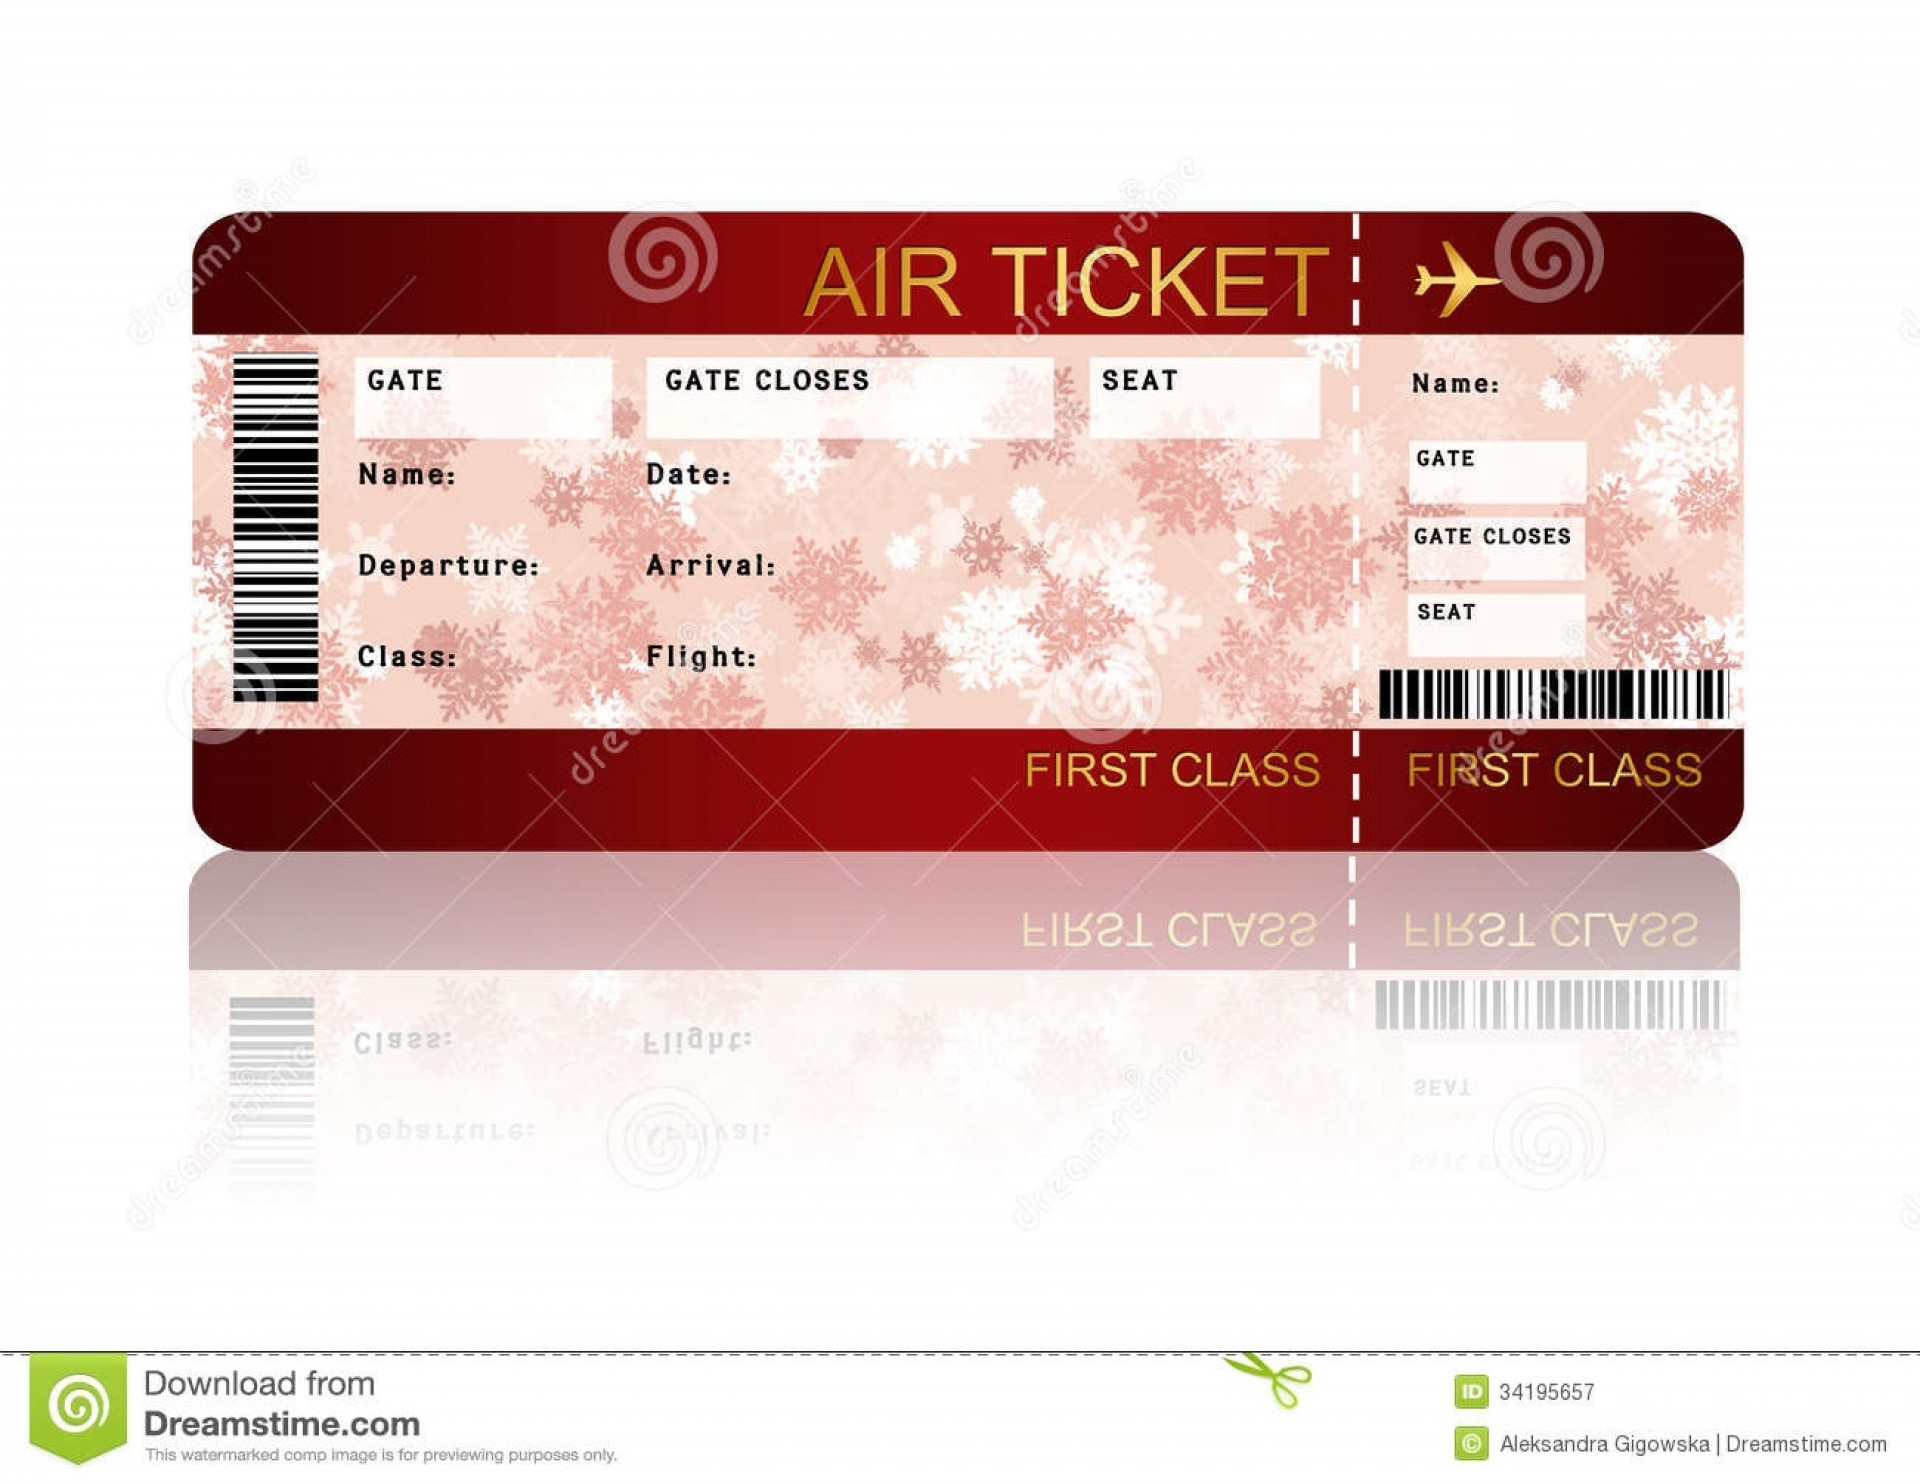 003 Incredible Free Fake Concert Ticket Template High Def 1920